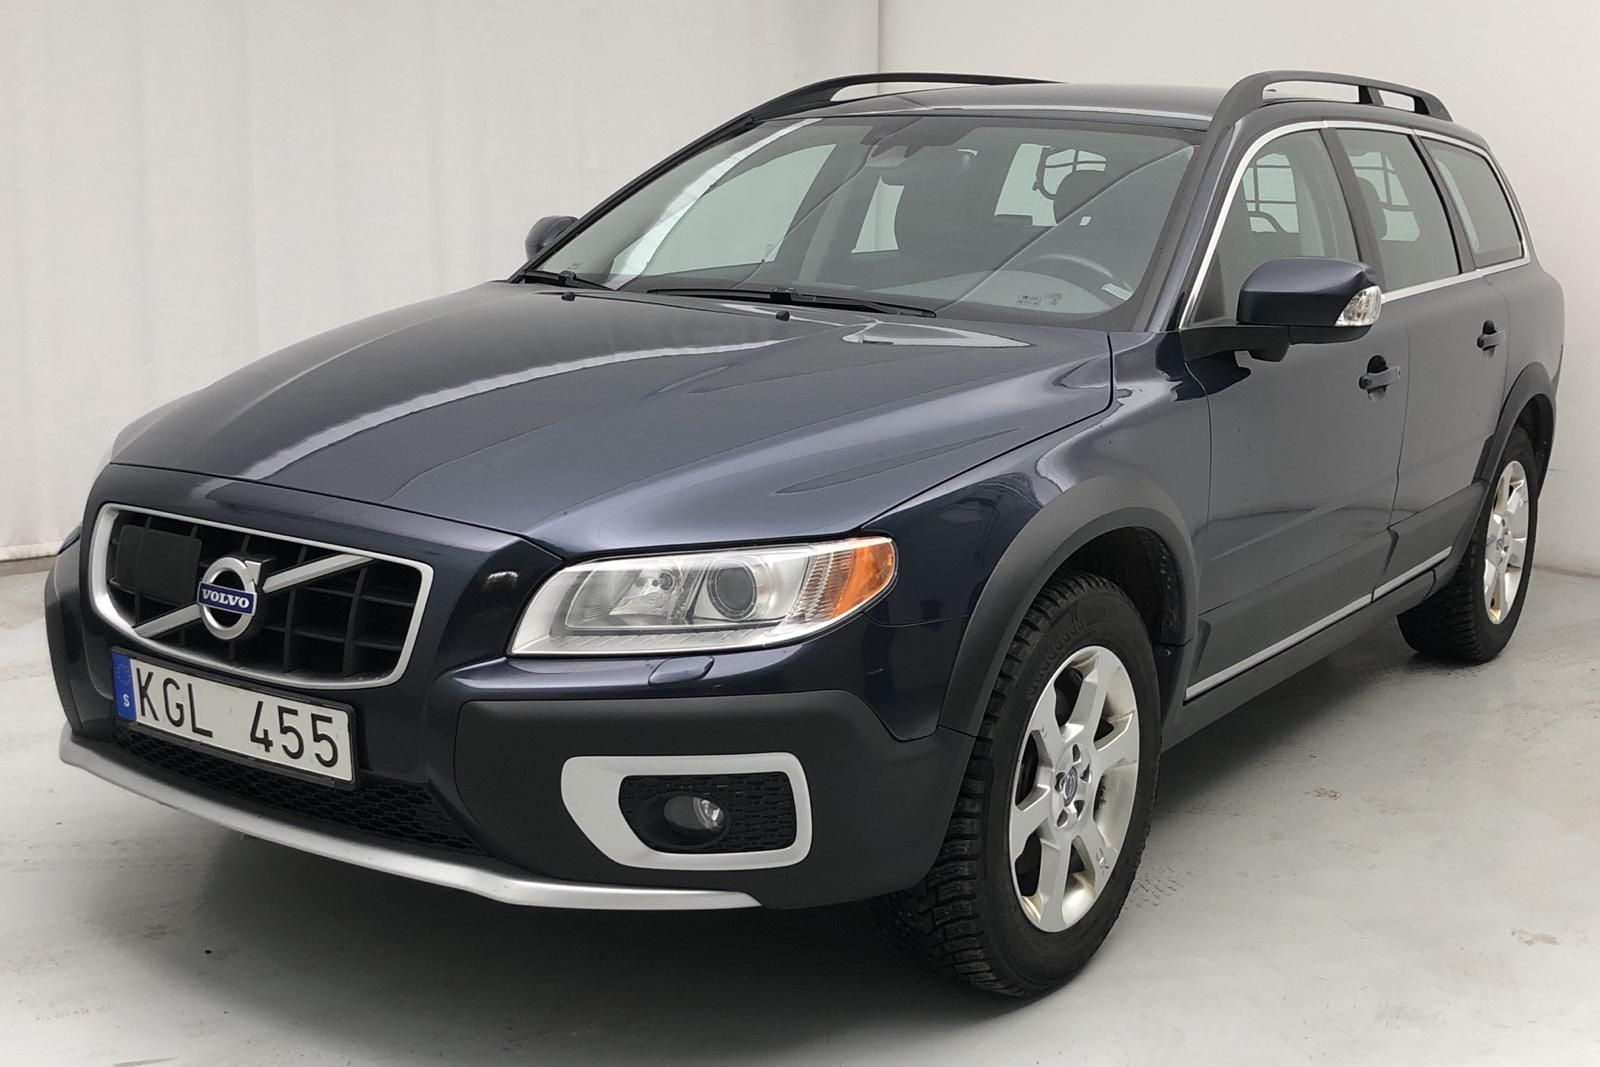 Volvo XC70 II D5 AWD (PS 224)